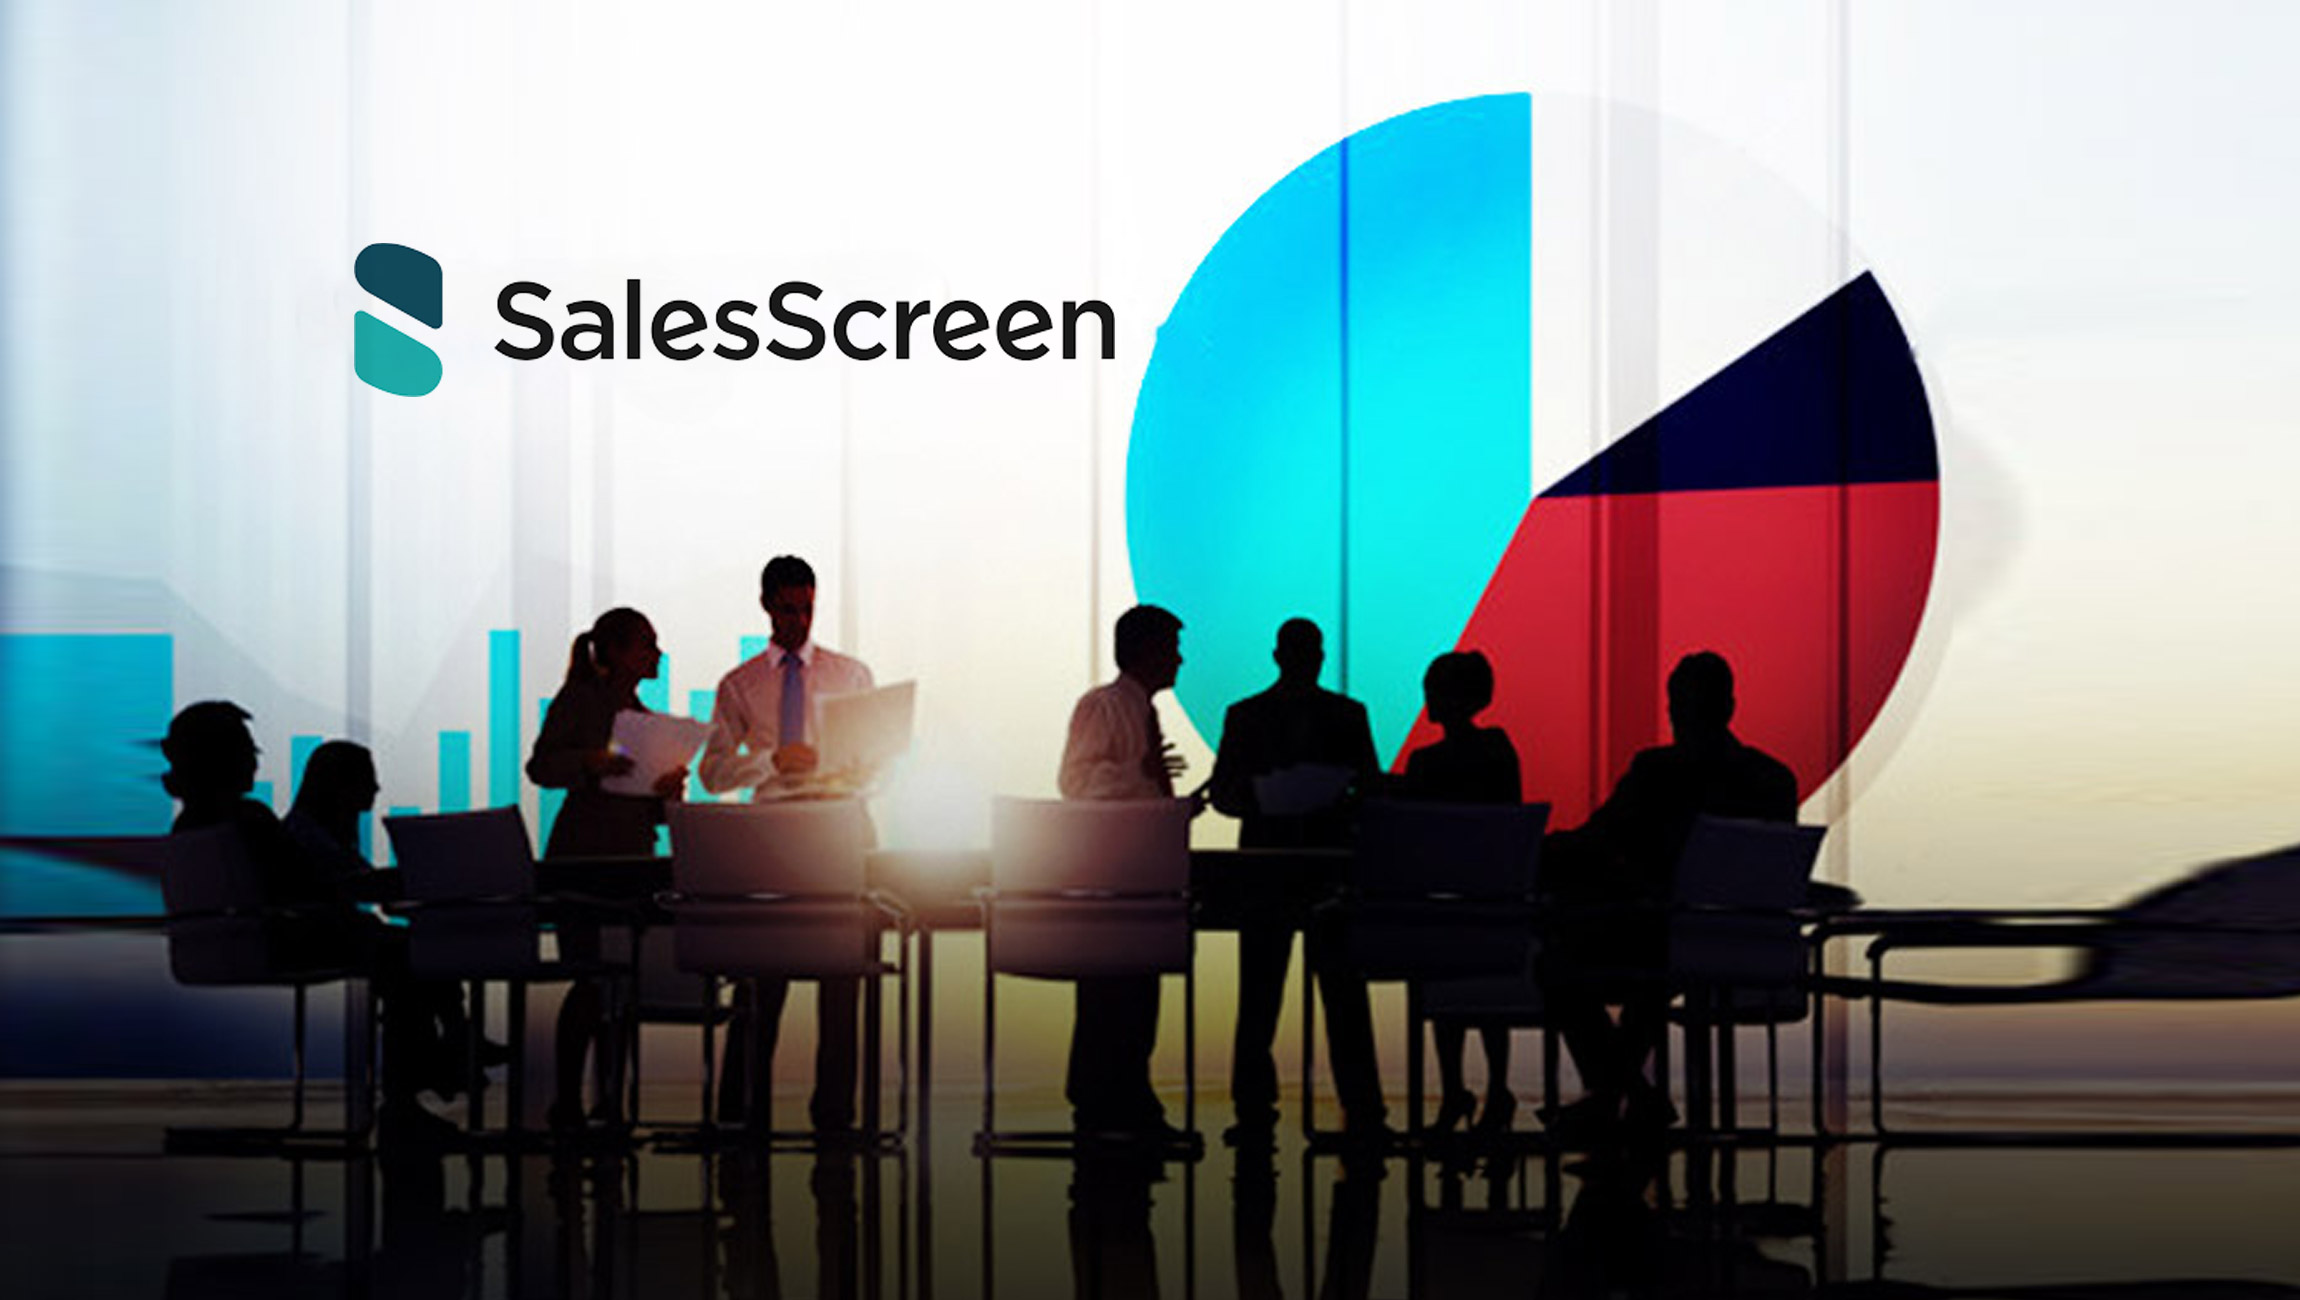 SalesScreen-Expands-Its-Gamification-Platform-Allowing-All-Employees-to-Root-On-Their-Sales-Team